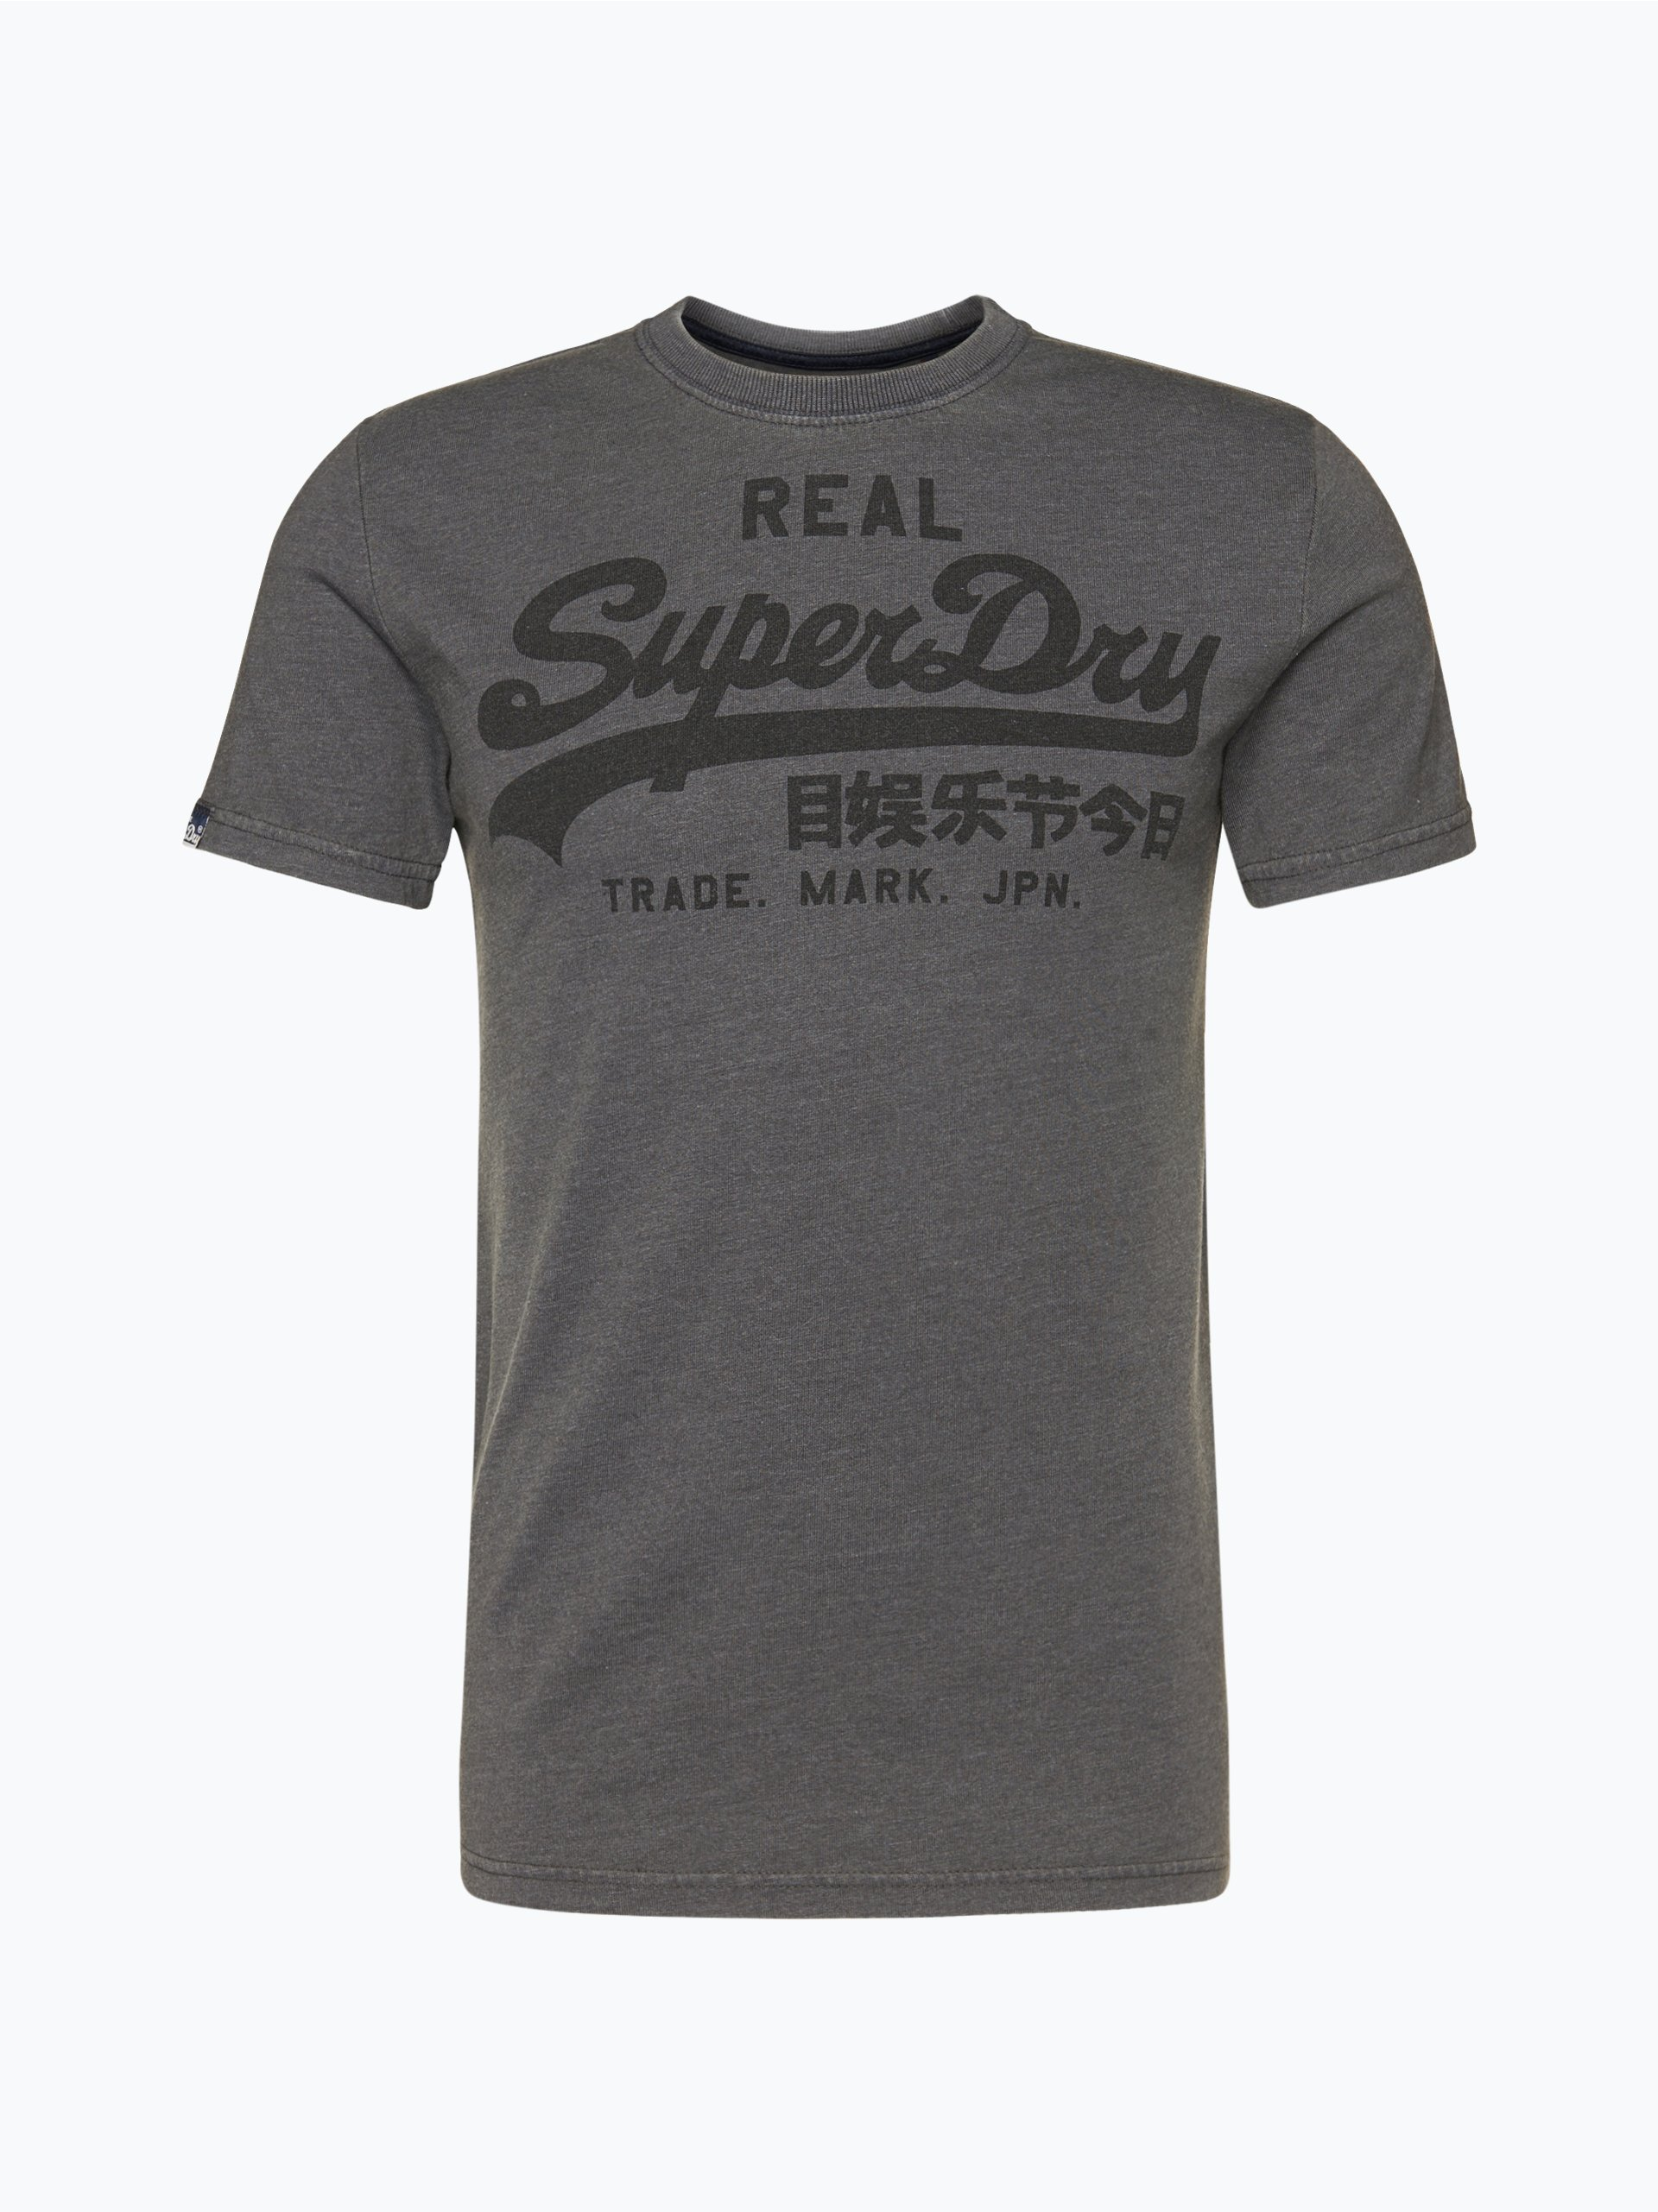 superdry herren t shirt grau gemustert online kaufen. Black Bedroom Furniture Sets. Home Design Ideas